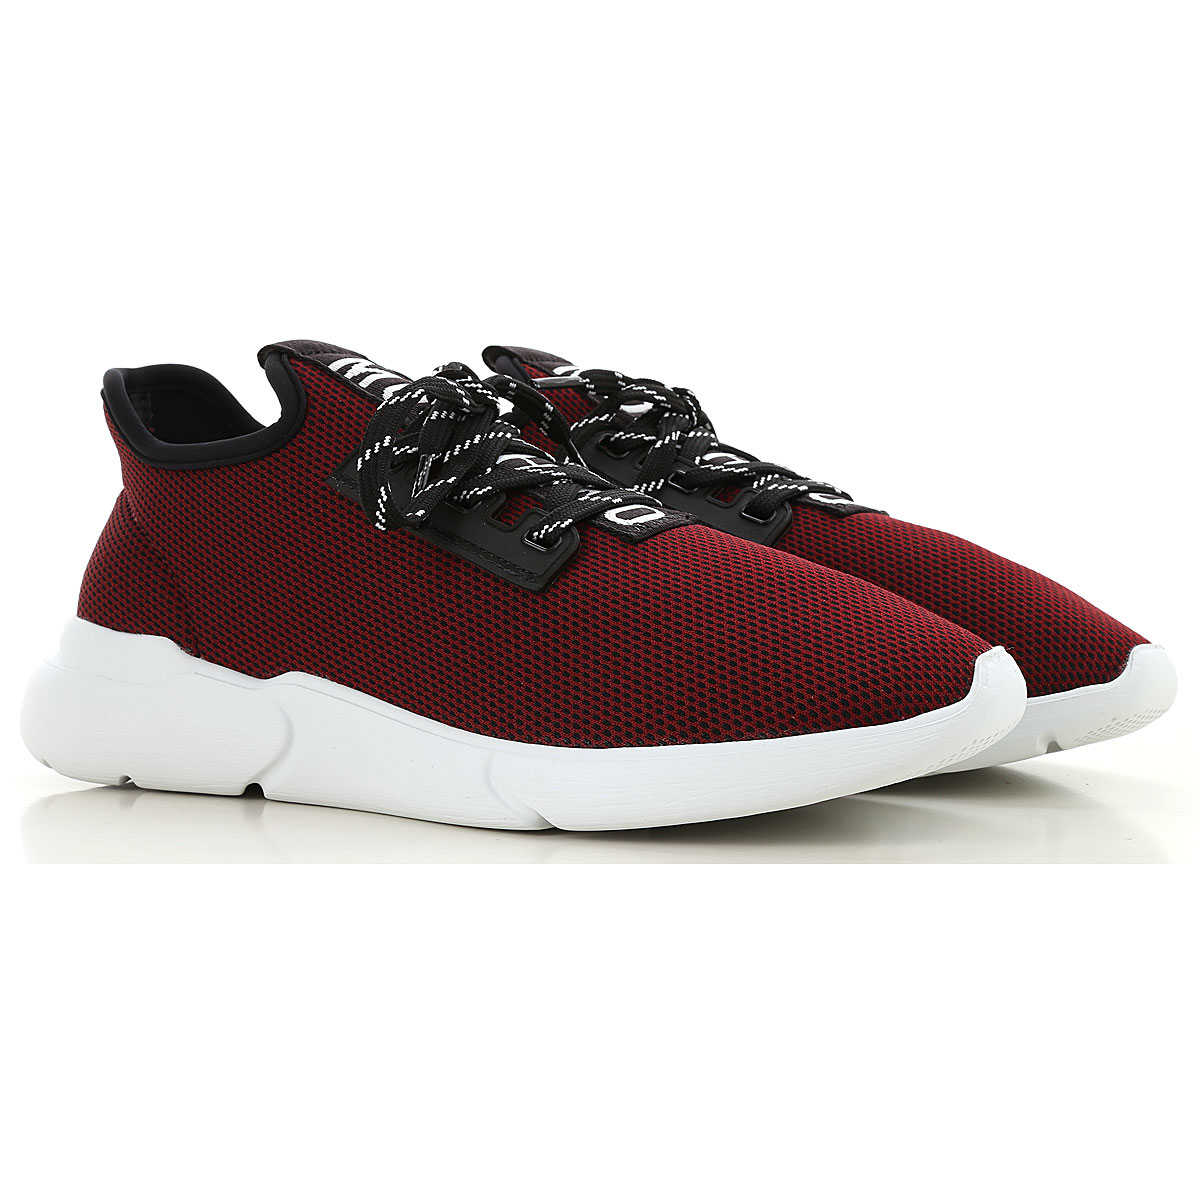 Moschino Sneakers for Women On Sale